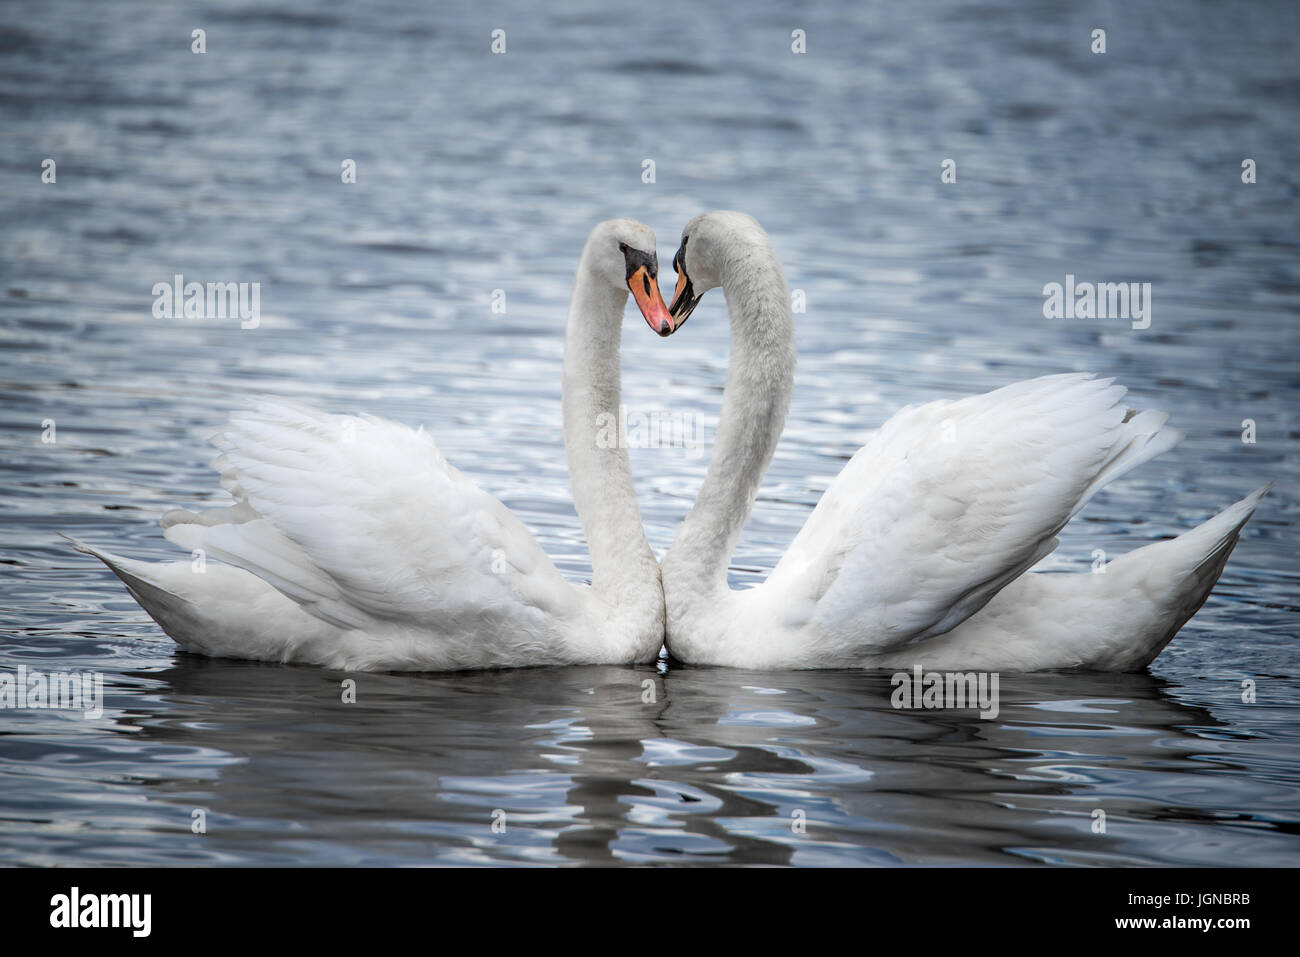 A Profile Portrait of Two Courting Mute Swans - Stock Image